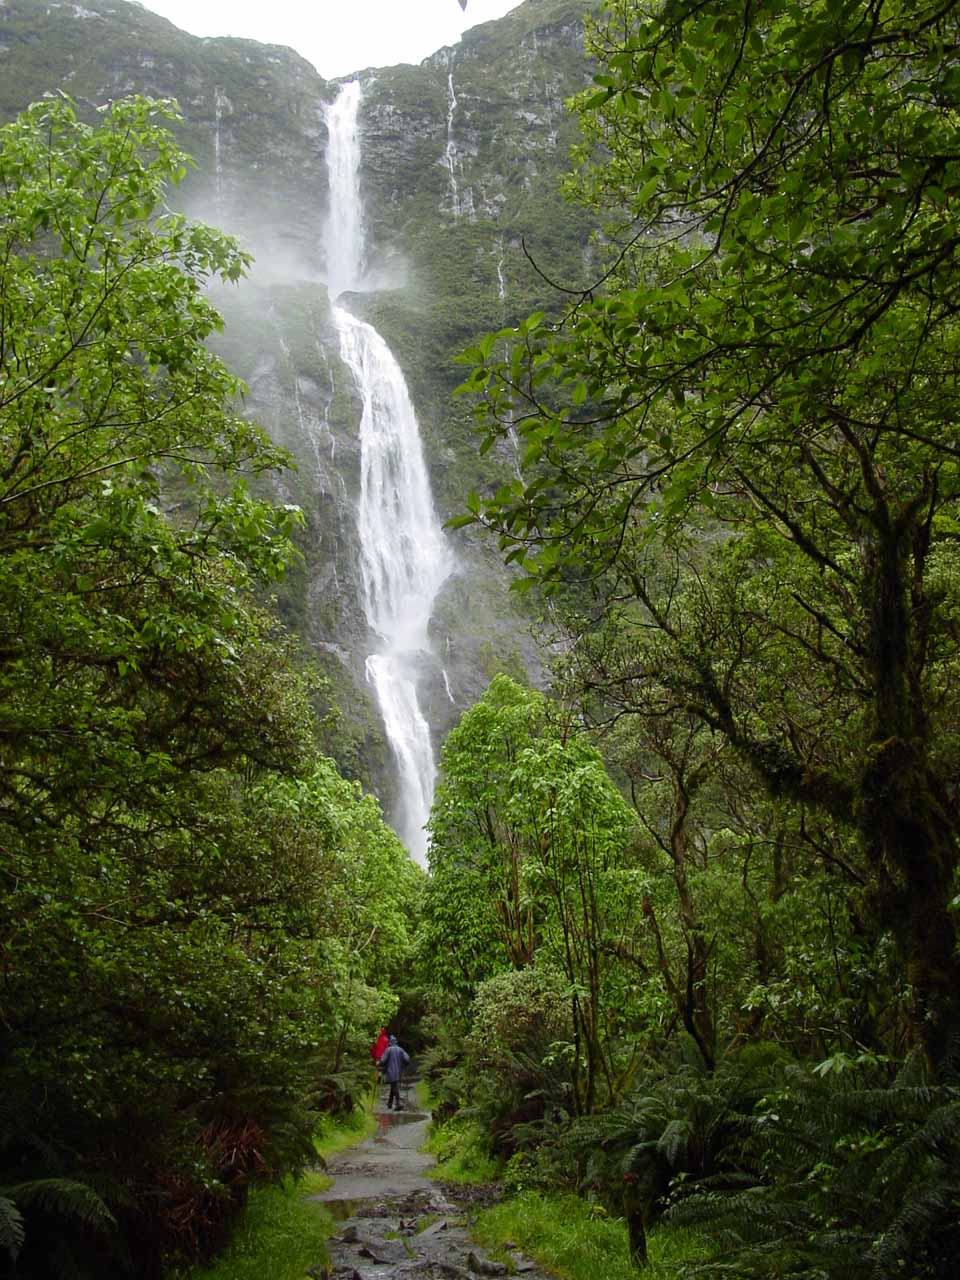 10. SUTHERLAND FALLS [Fiordland National Park, New Zealand]